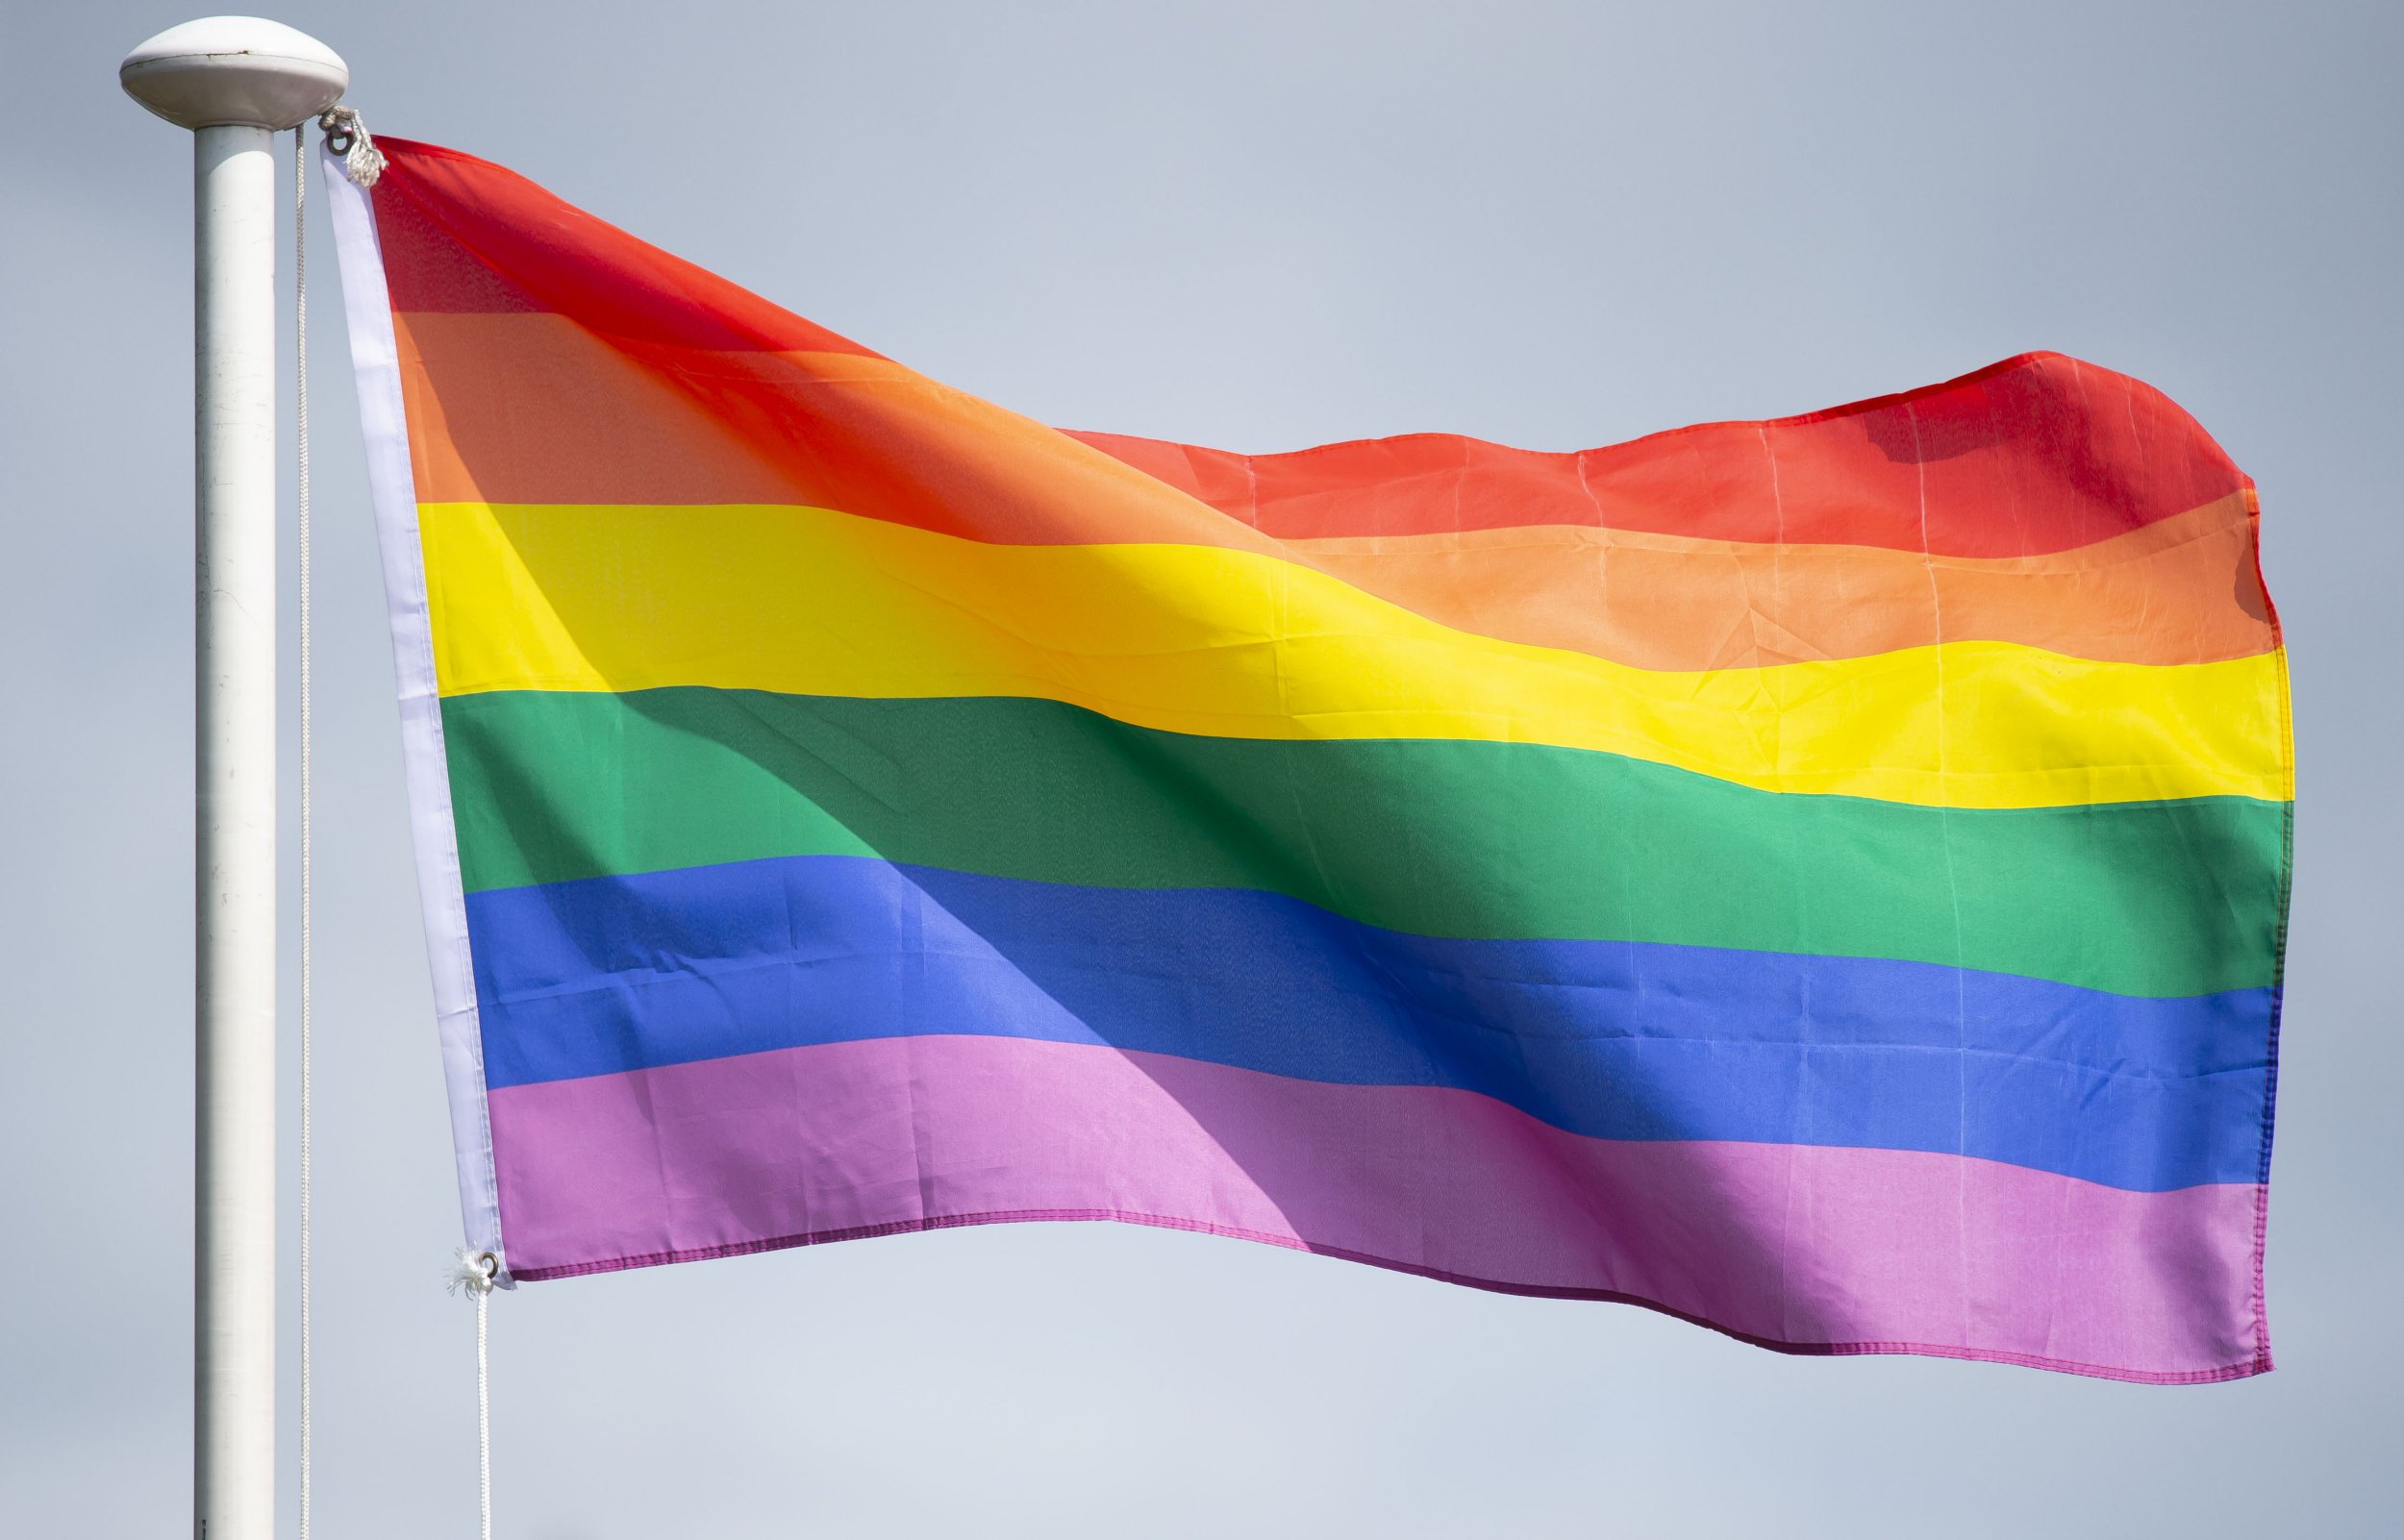 Law firm ranked top employer for gay people by Stonewall